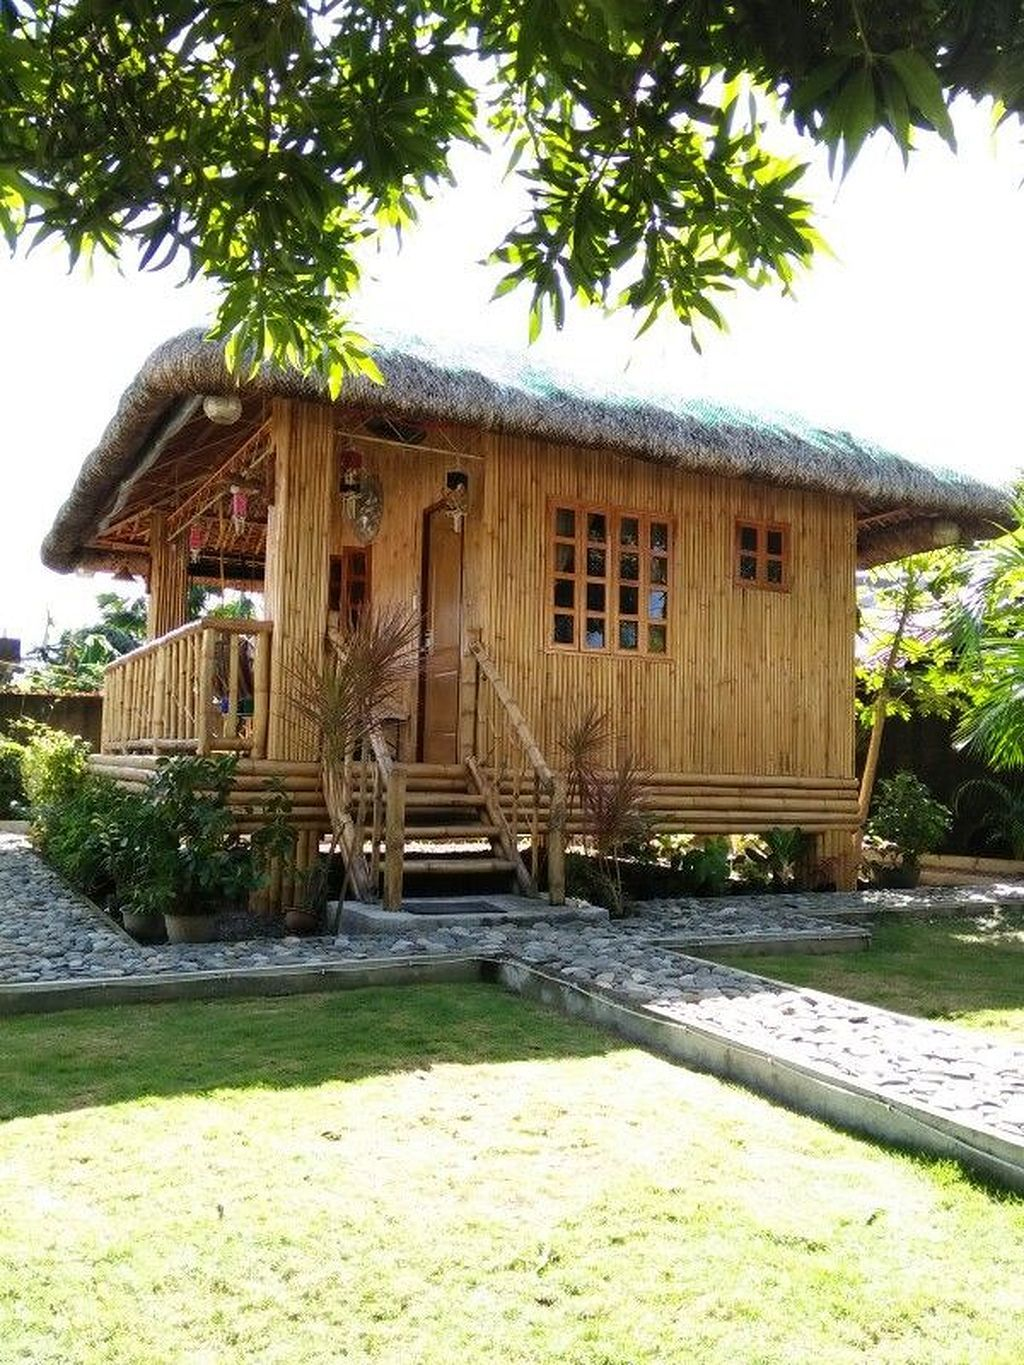 Discover ideas about bahay kubo design philippines beautiful bamboo home design great bamboo house amazing bamboo